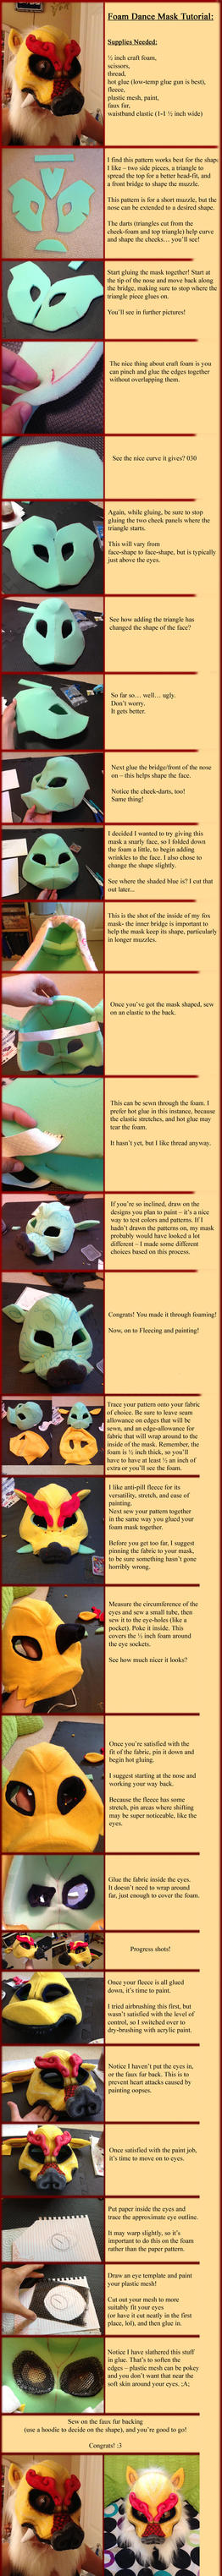 How to Make a Dance Mask - Tutorial by apox0n